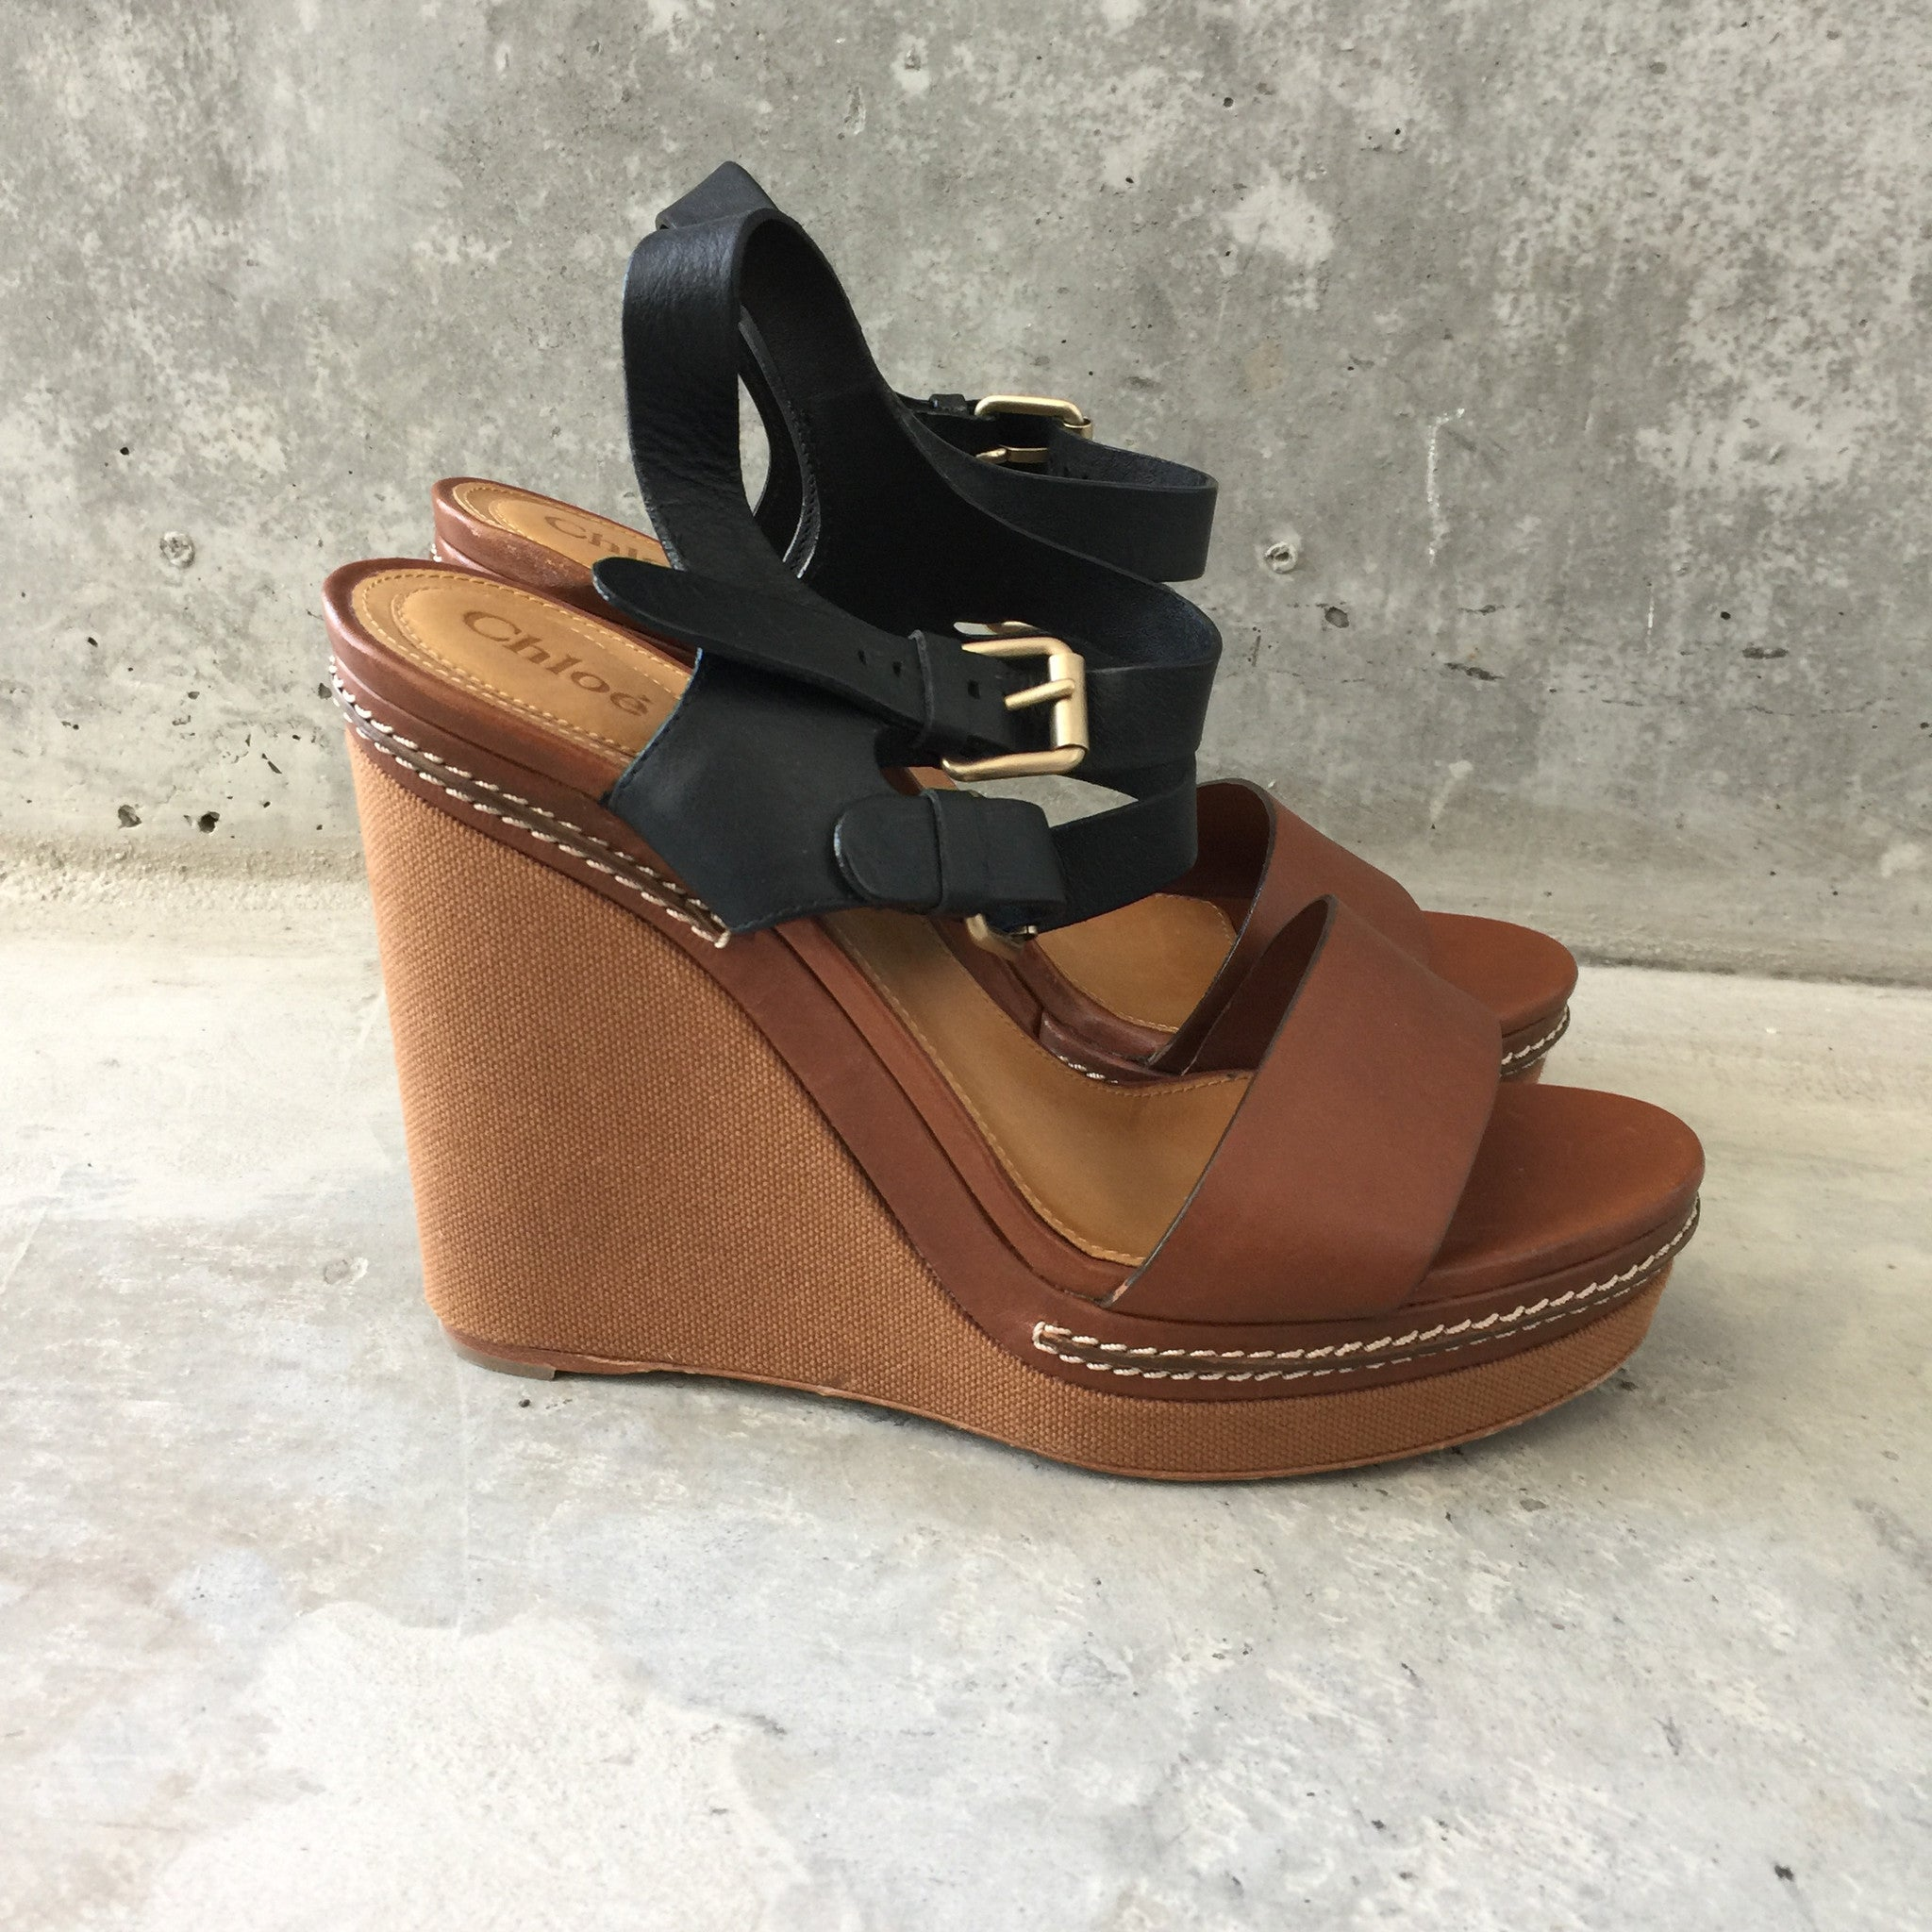 AUthentic CHLOE Wedges Size 8.5